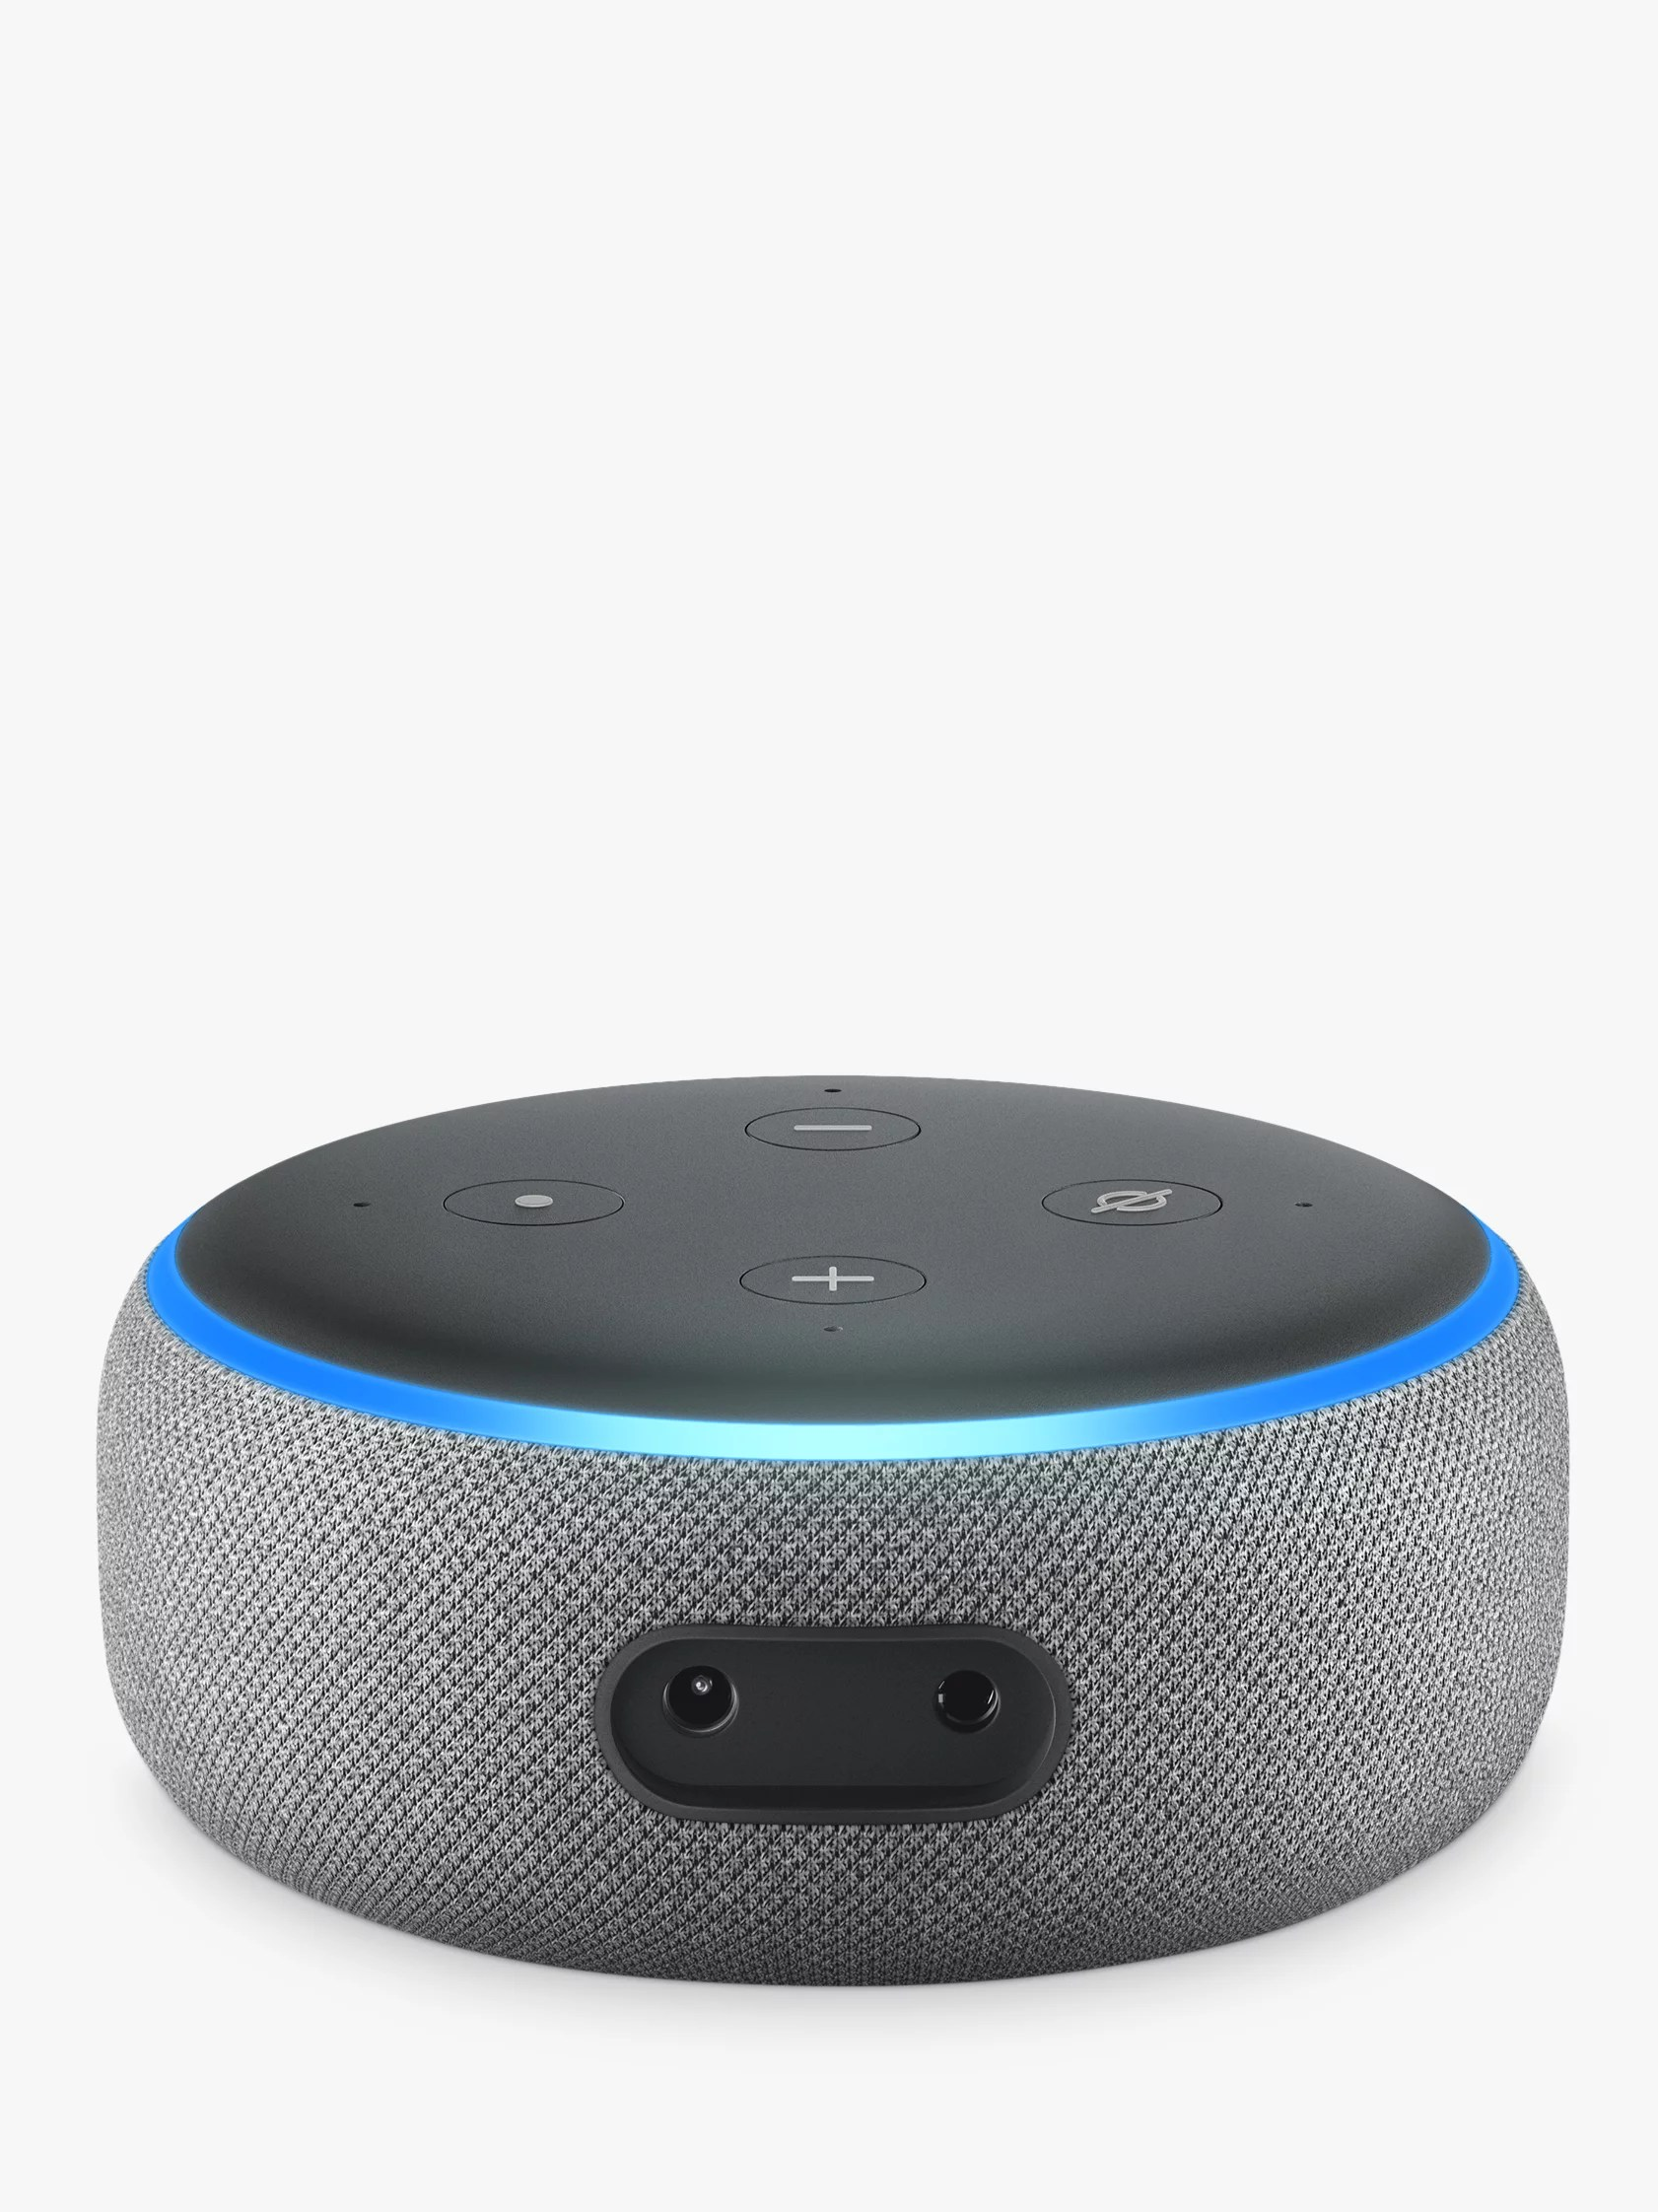 Alexa Dot Amazon Echo Dot Smart Device With Alexa Voice Recognition